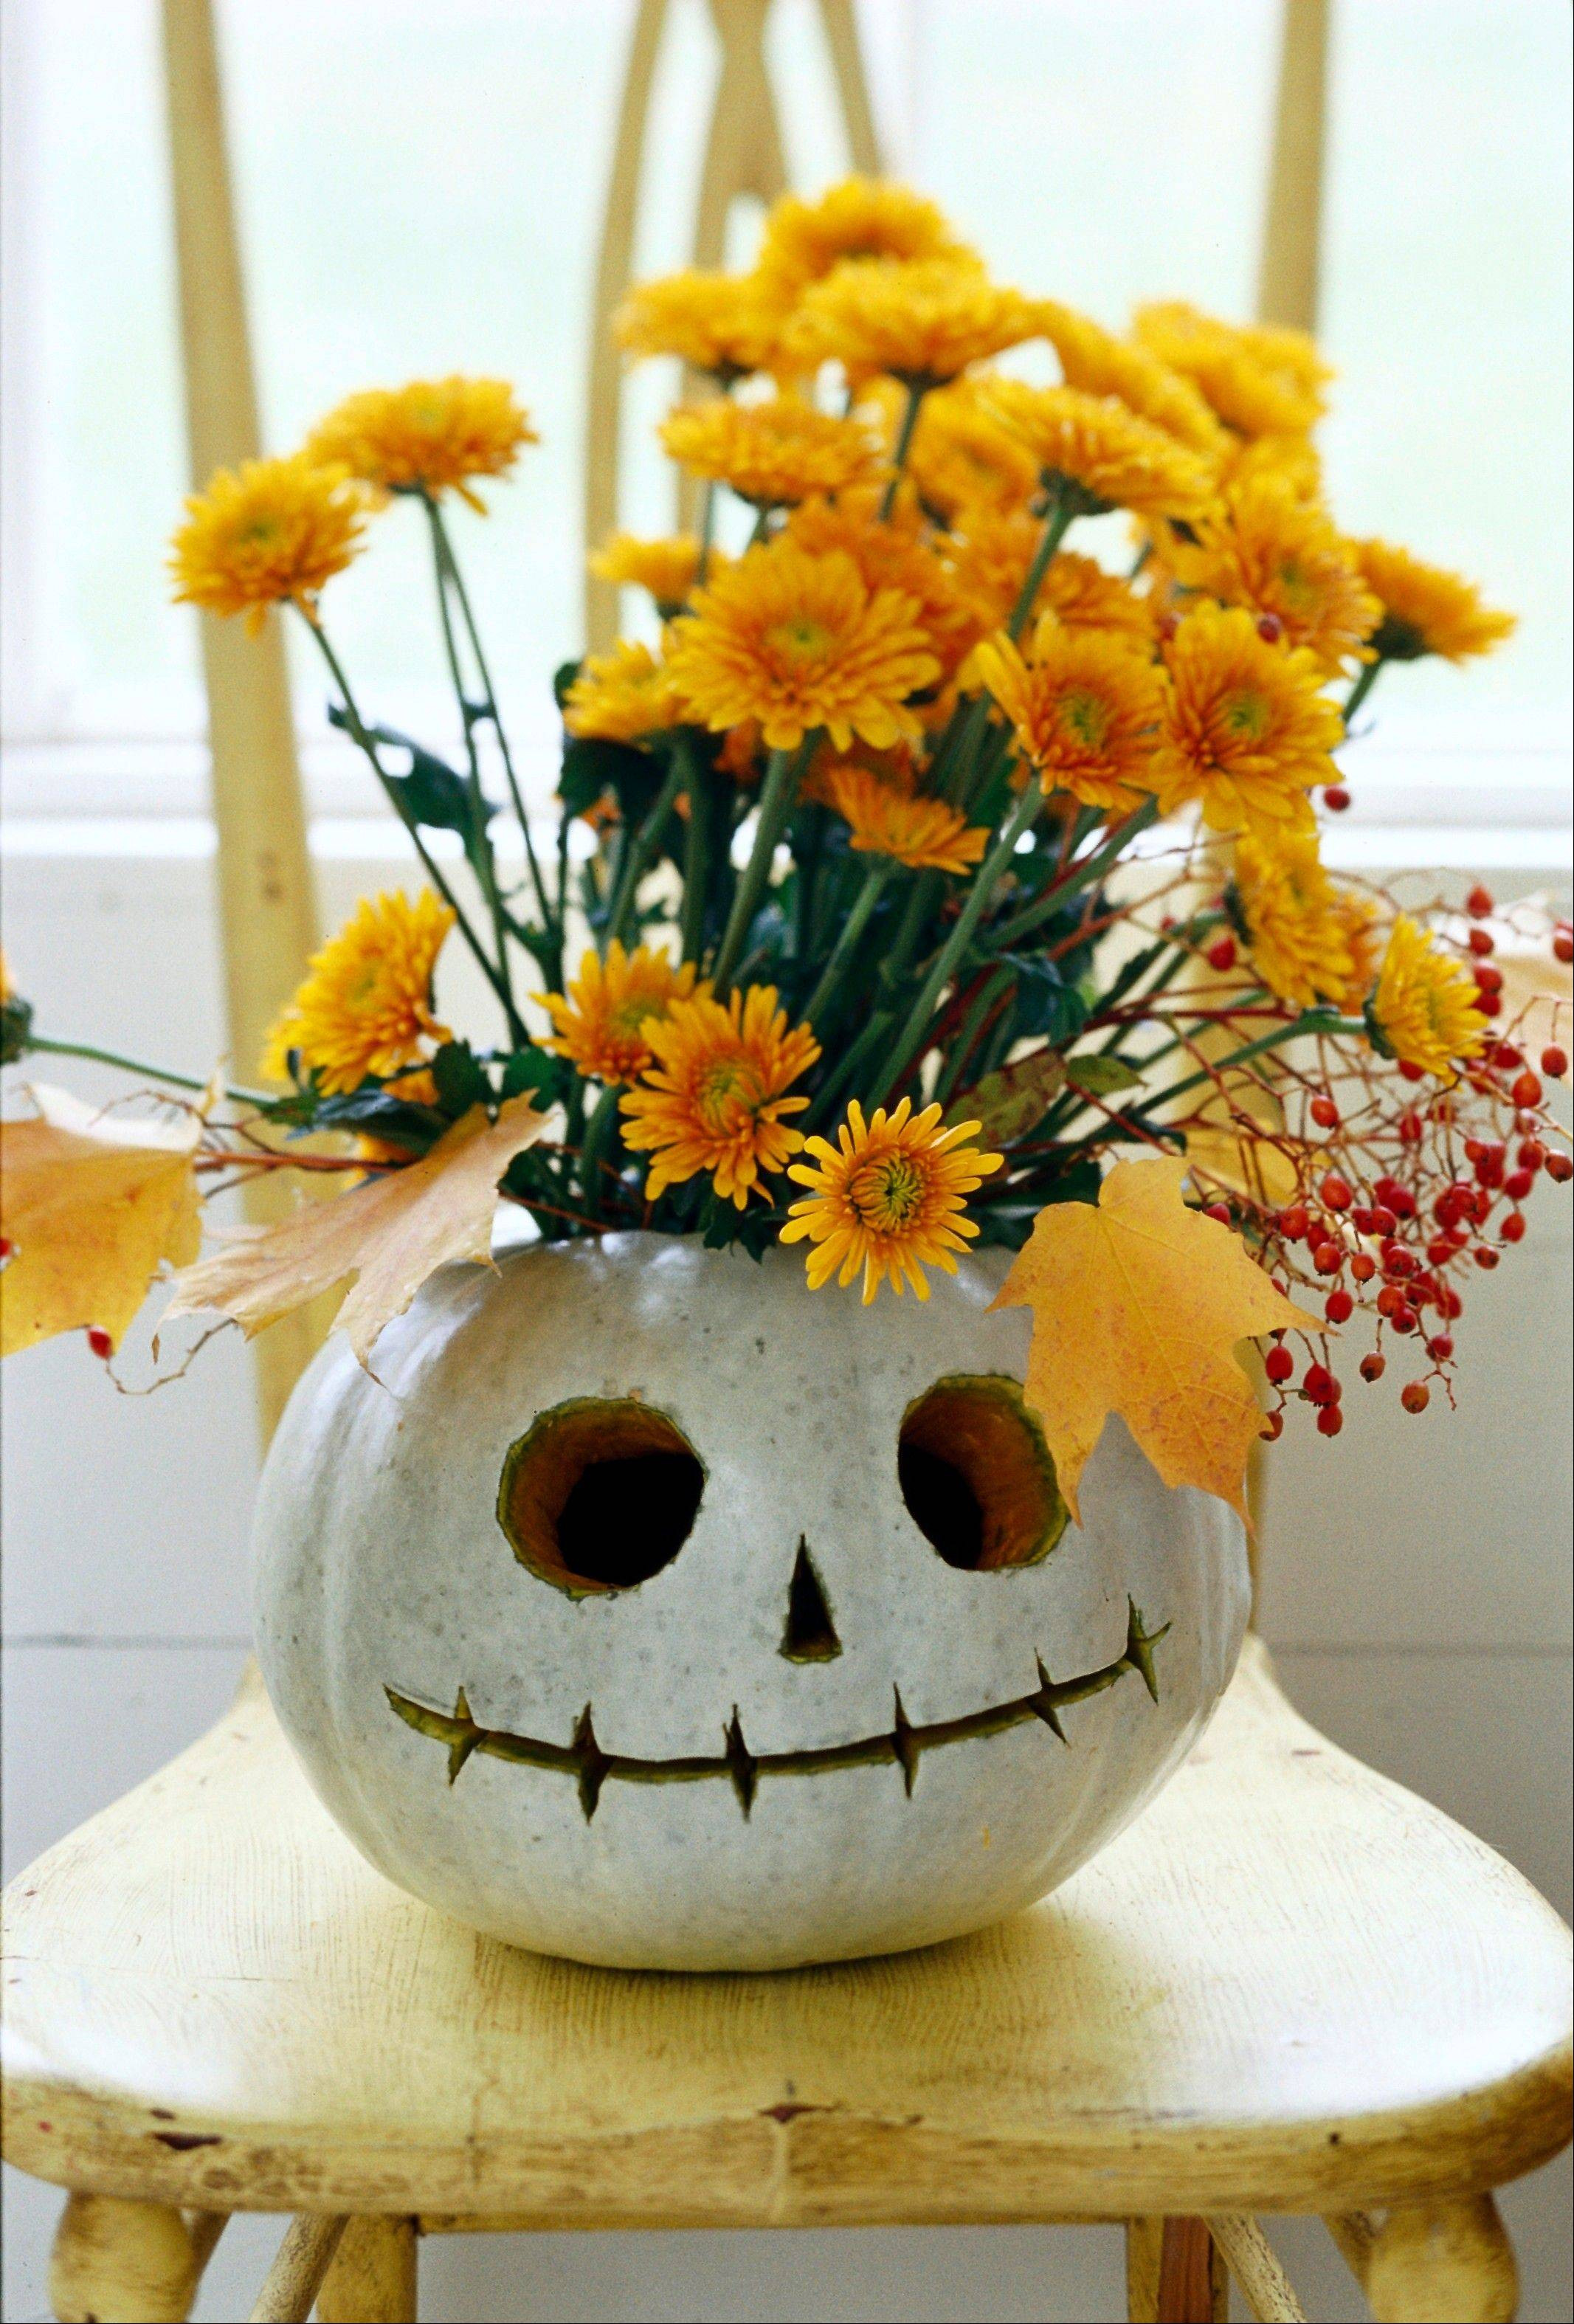 A pumpkin can be made into a vase. This one is carved into a likeness of the animated character Jack Skellington from �The Nightmare Before Christmas.�